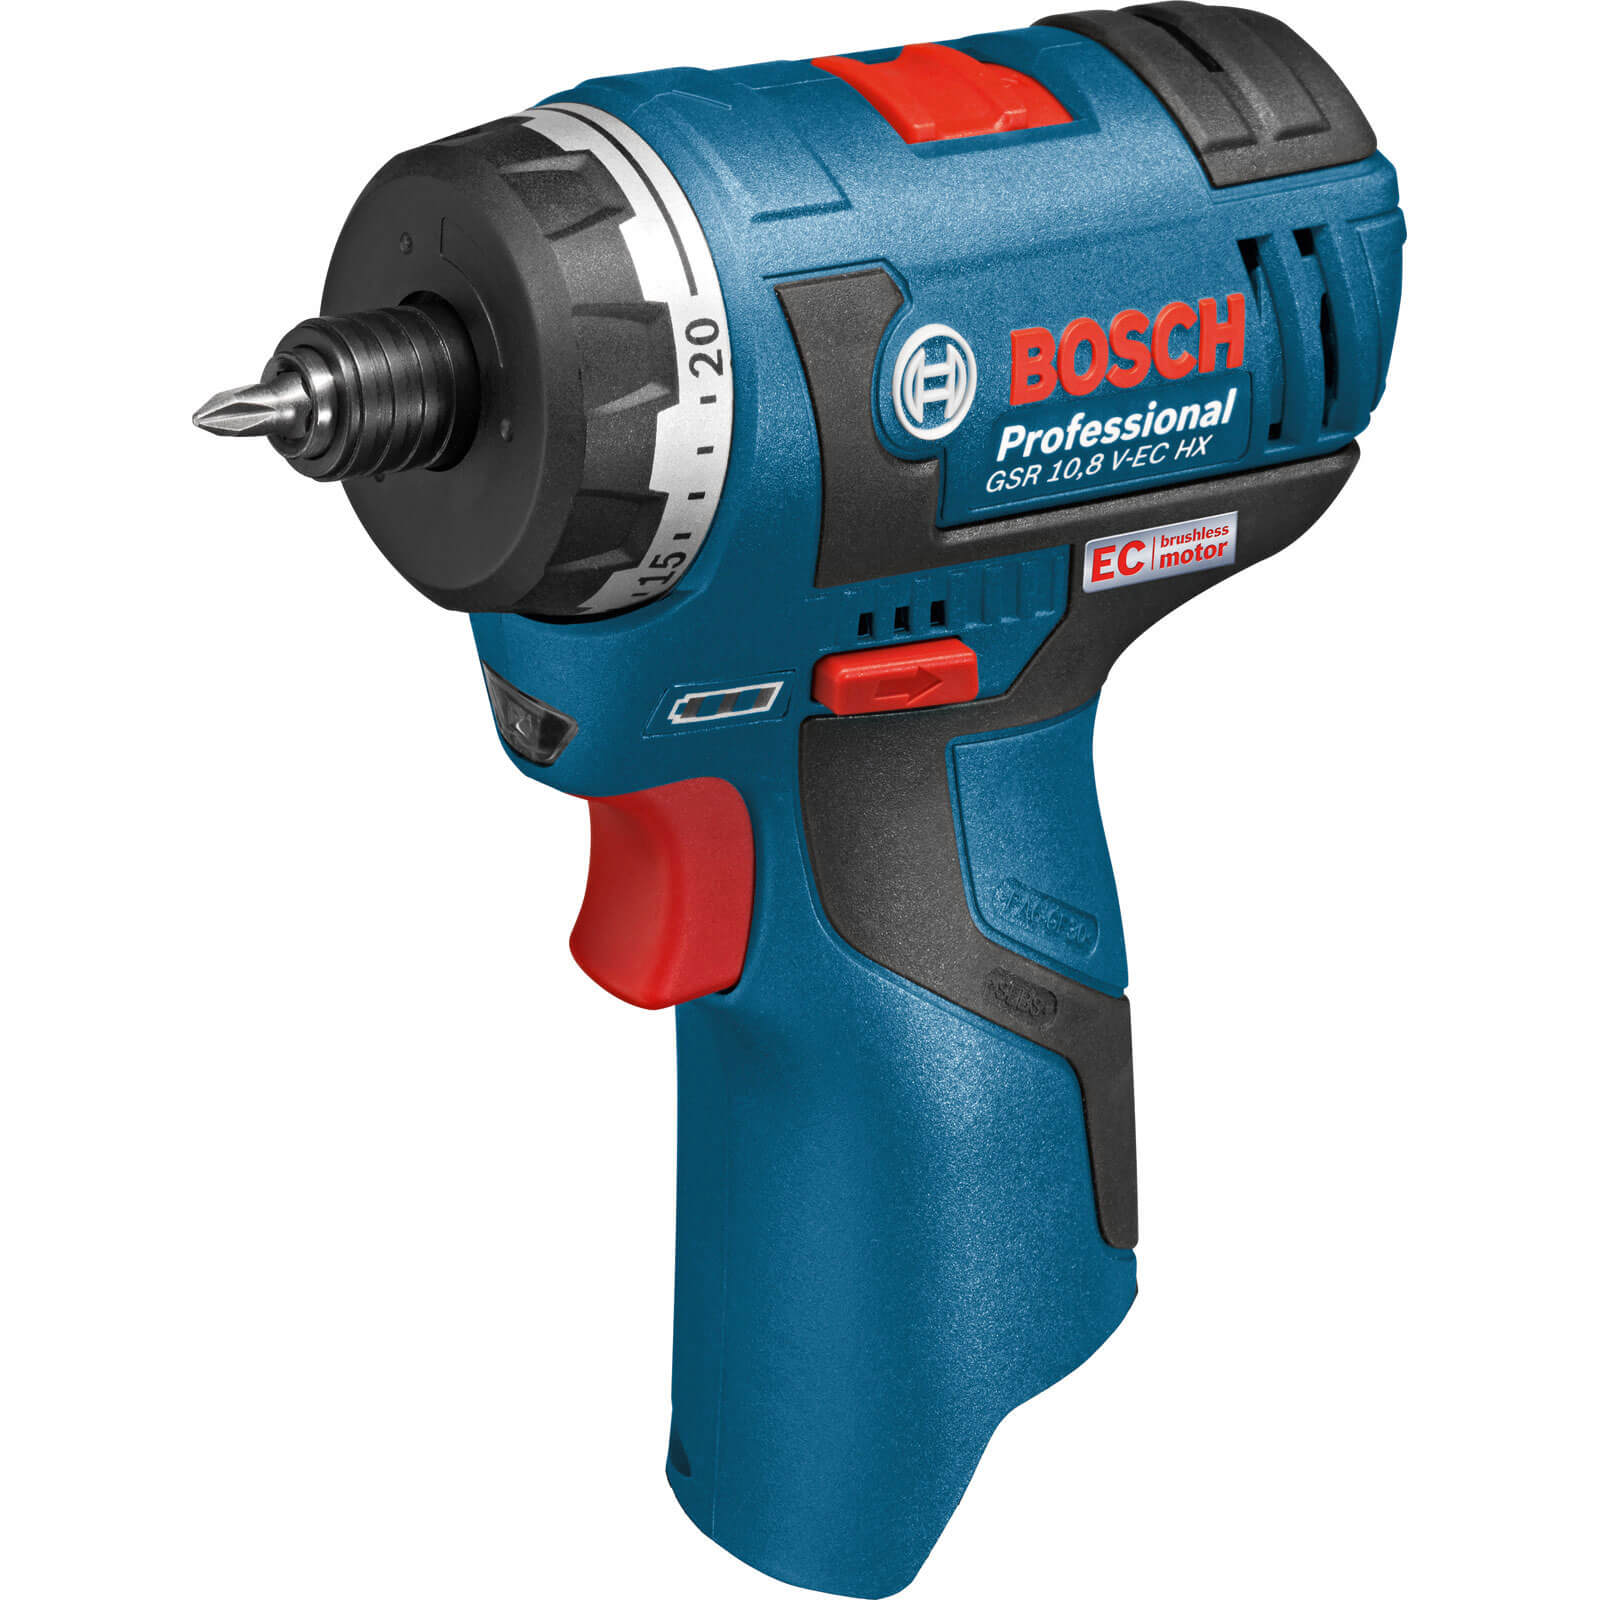 Bosch GSR 10.8 V-EC HX 10.8v Cordless 2 Speed Brushless Drill Driver without Battery or Charger